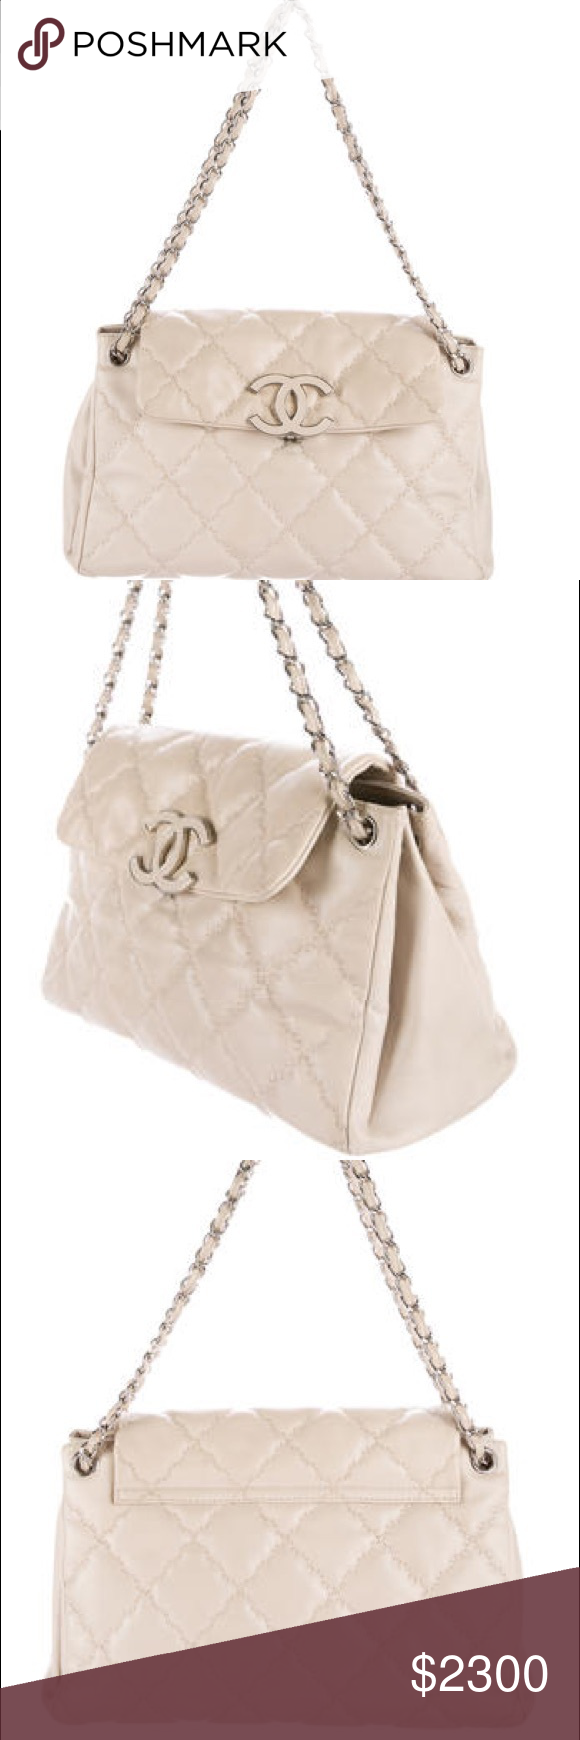 5177149b29c76d Authentic Chanel Quilted CC Accordion Flap Bag Beige quilted lamb skin Chanel  Hampton CC Accordion Flap Bag. Silver-tone hardware. Dual leather and ...